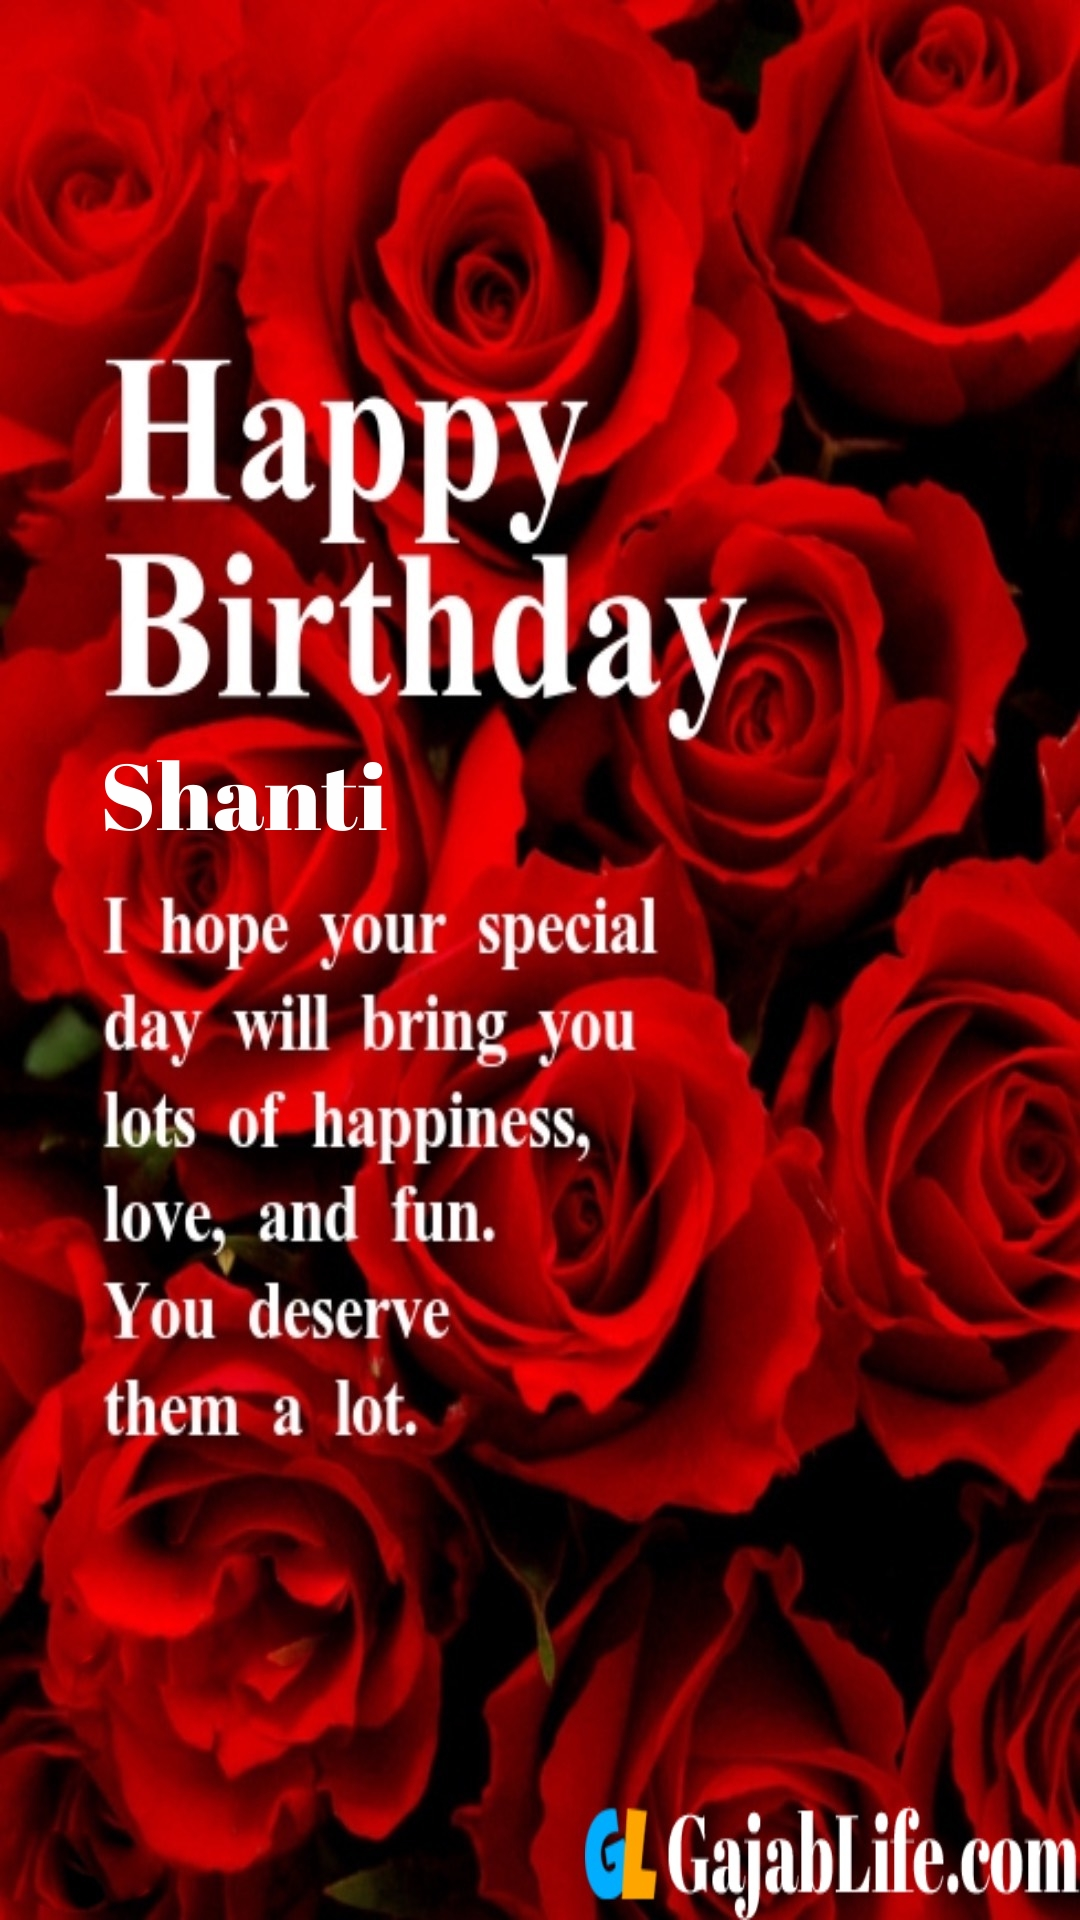 Shanti birthday greeting card with rose & love